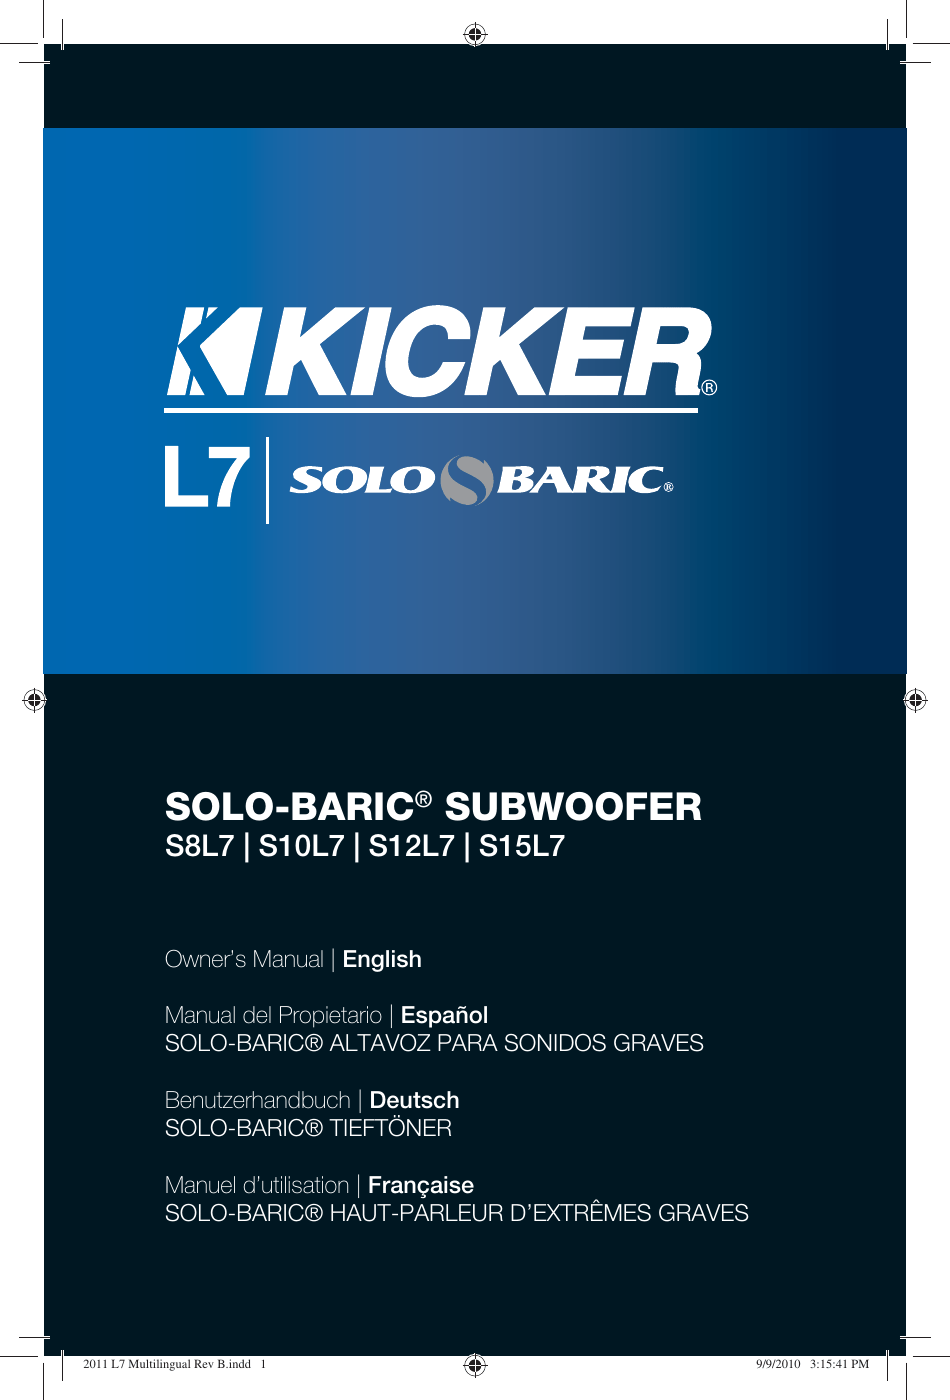 hight resolution of kicker solo baric l7 15 wiring diagram kicker 2011 solo baric l7 owners manual multilingual